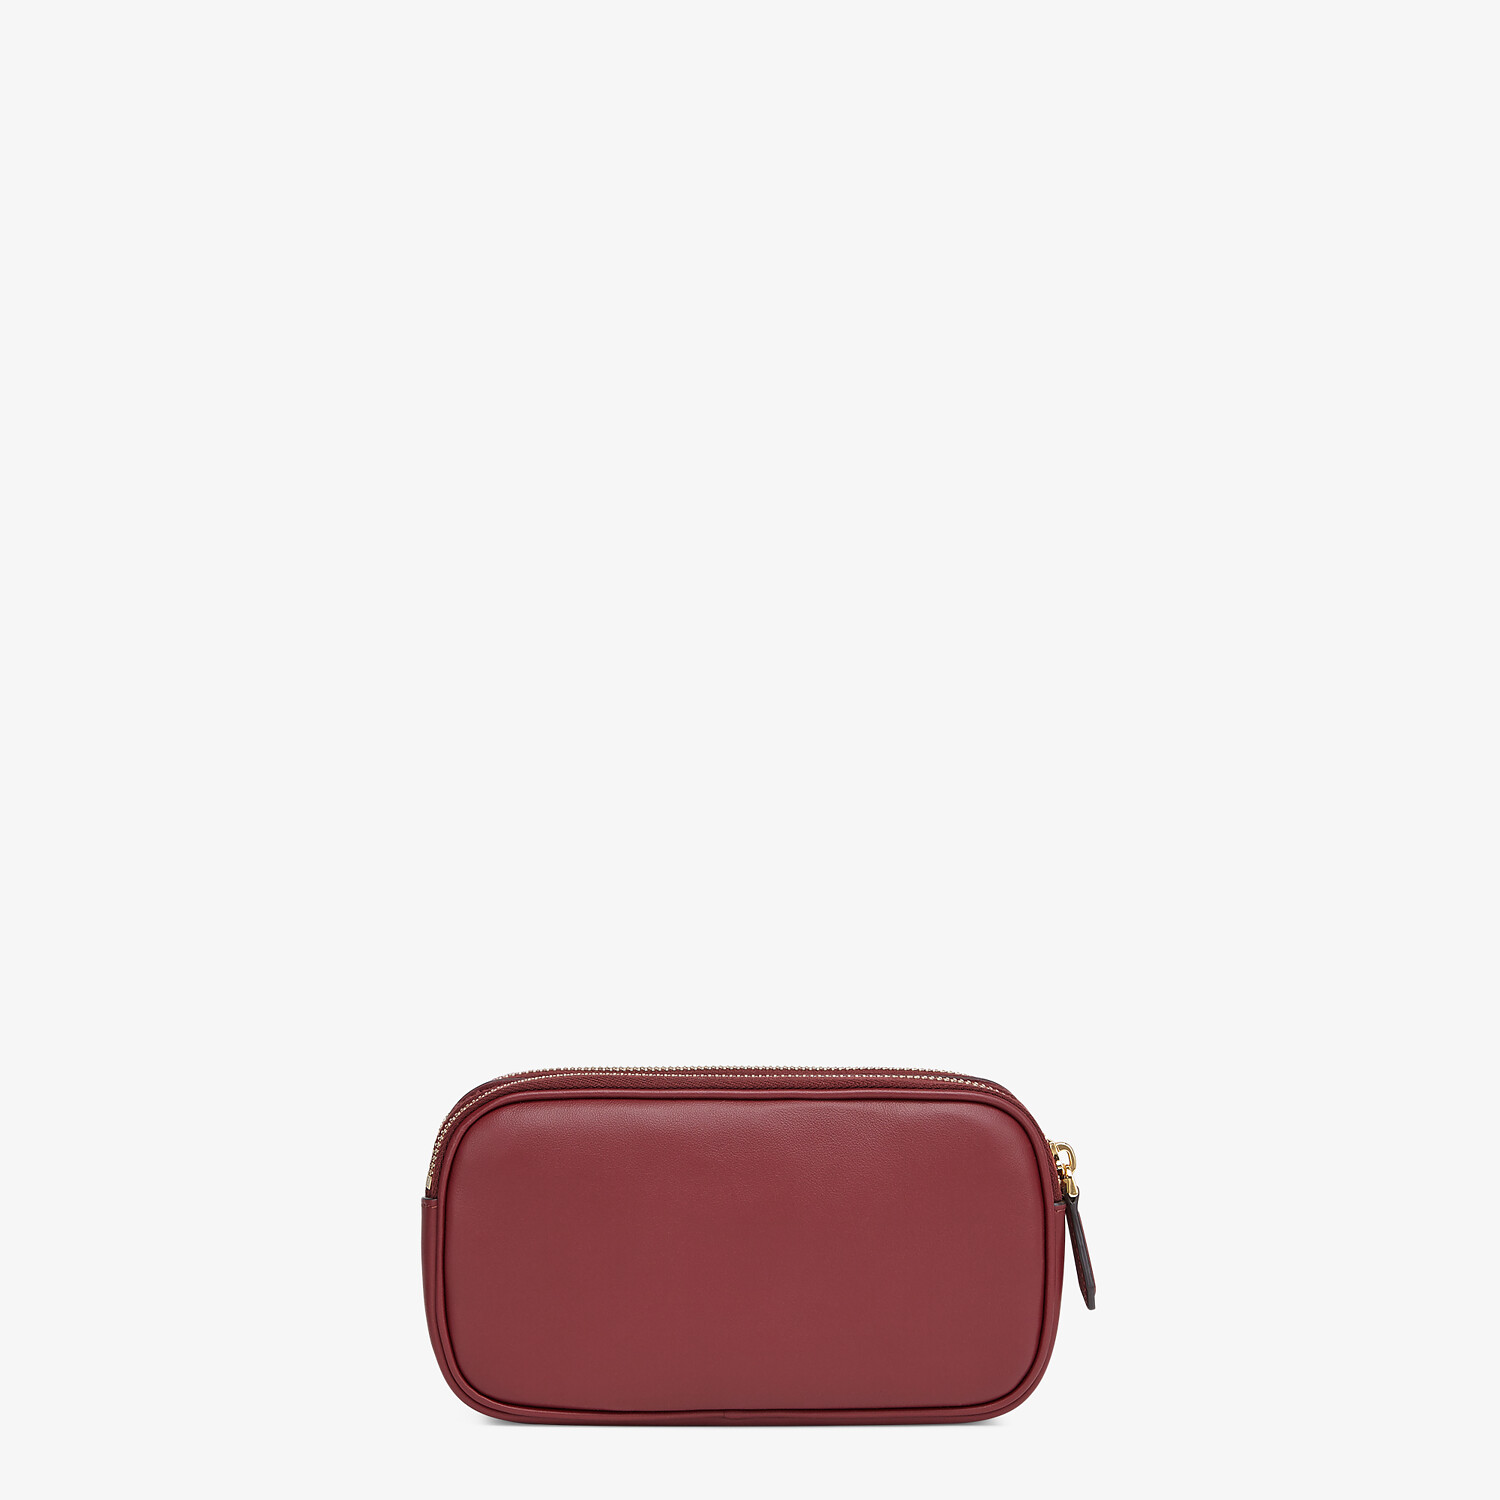 FENDI EASY 2 BAGUETTE - Burgundy leather mini bag - view 3 detail